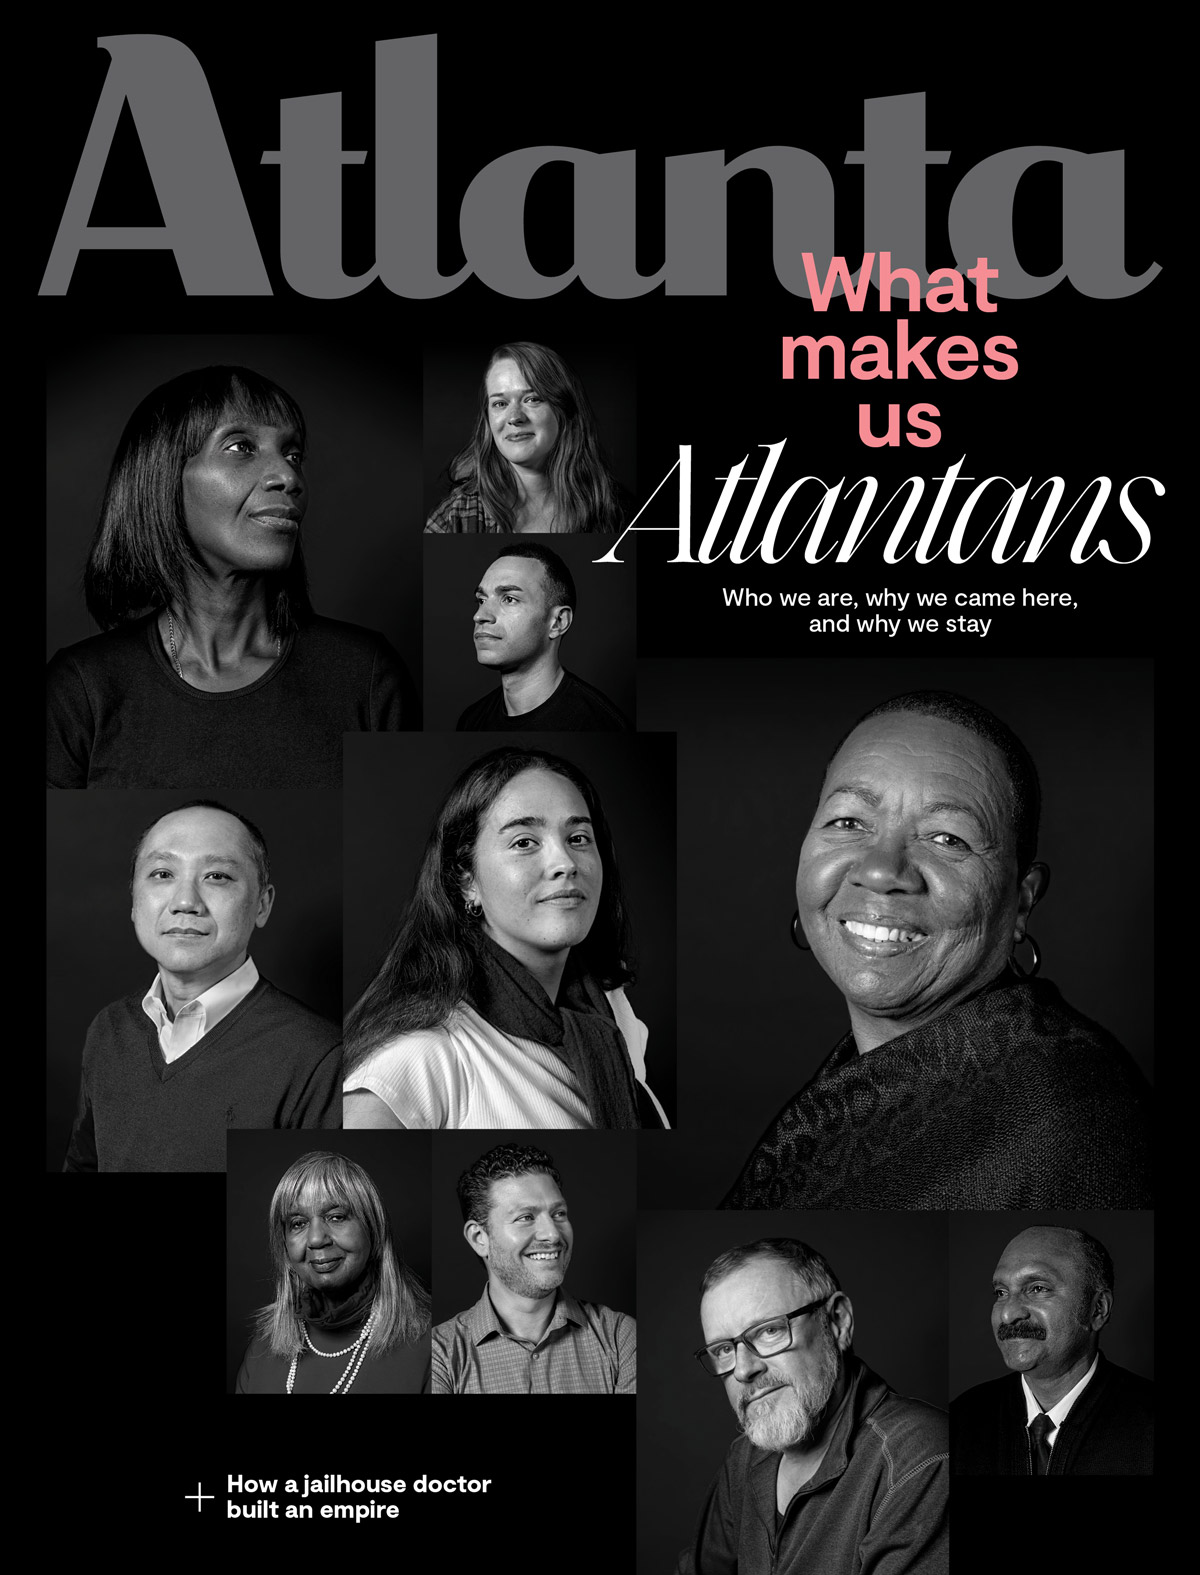 Atlanta Magazine January 2020 cover - What makes us Atlantans